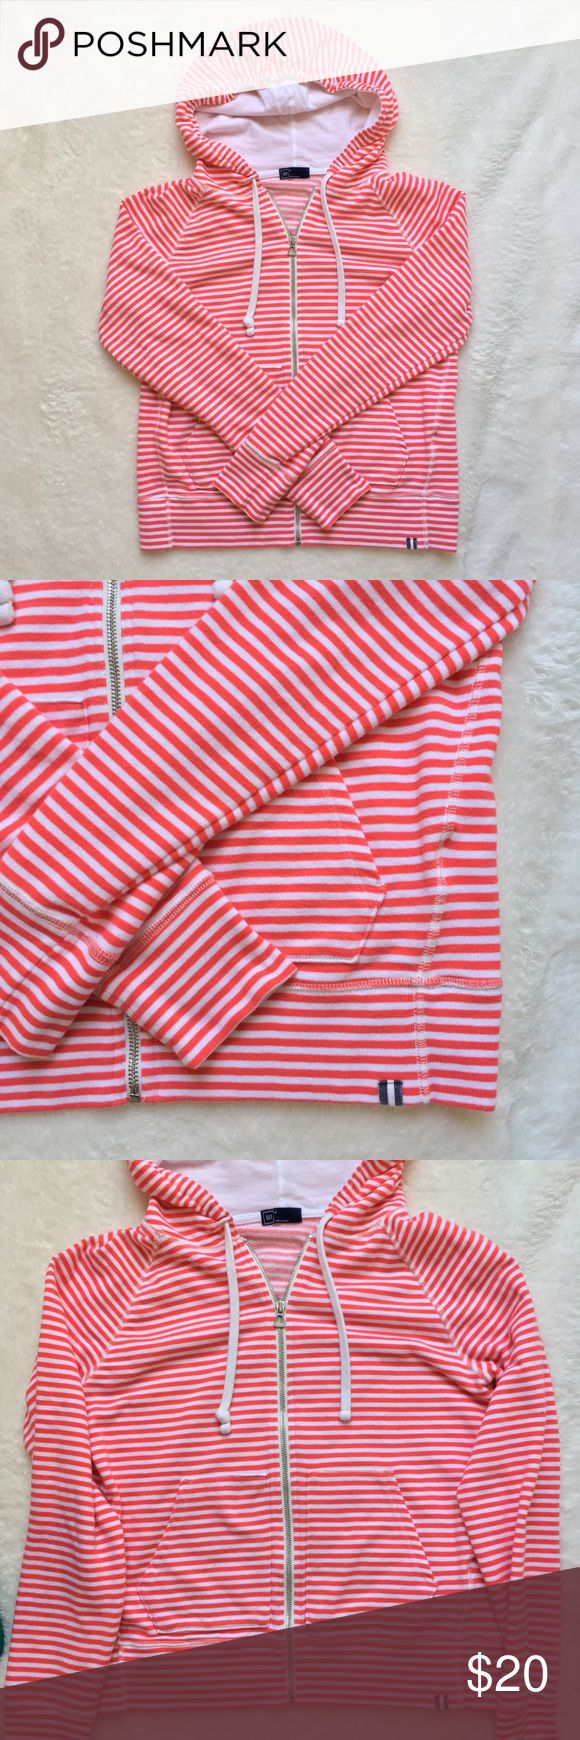 GAP Red & White Striped Zip Up Hoodie Women's M GAP Red & White Striped Zip Up Hoodie Women's M. Women's medium hoodie in excellent condition. Classic two pockets, soft spun cotton. GAP Tops Sweatshirts & Hoodies